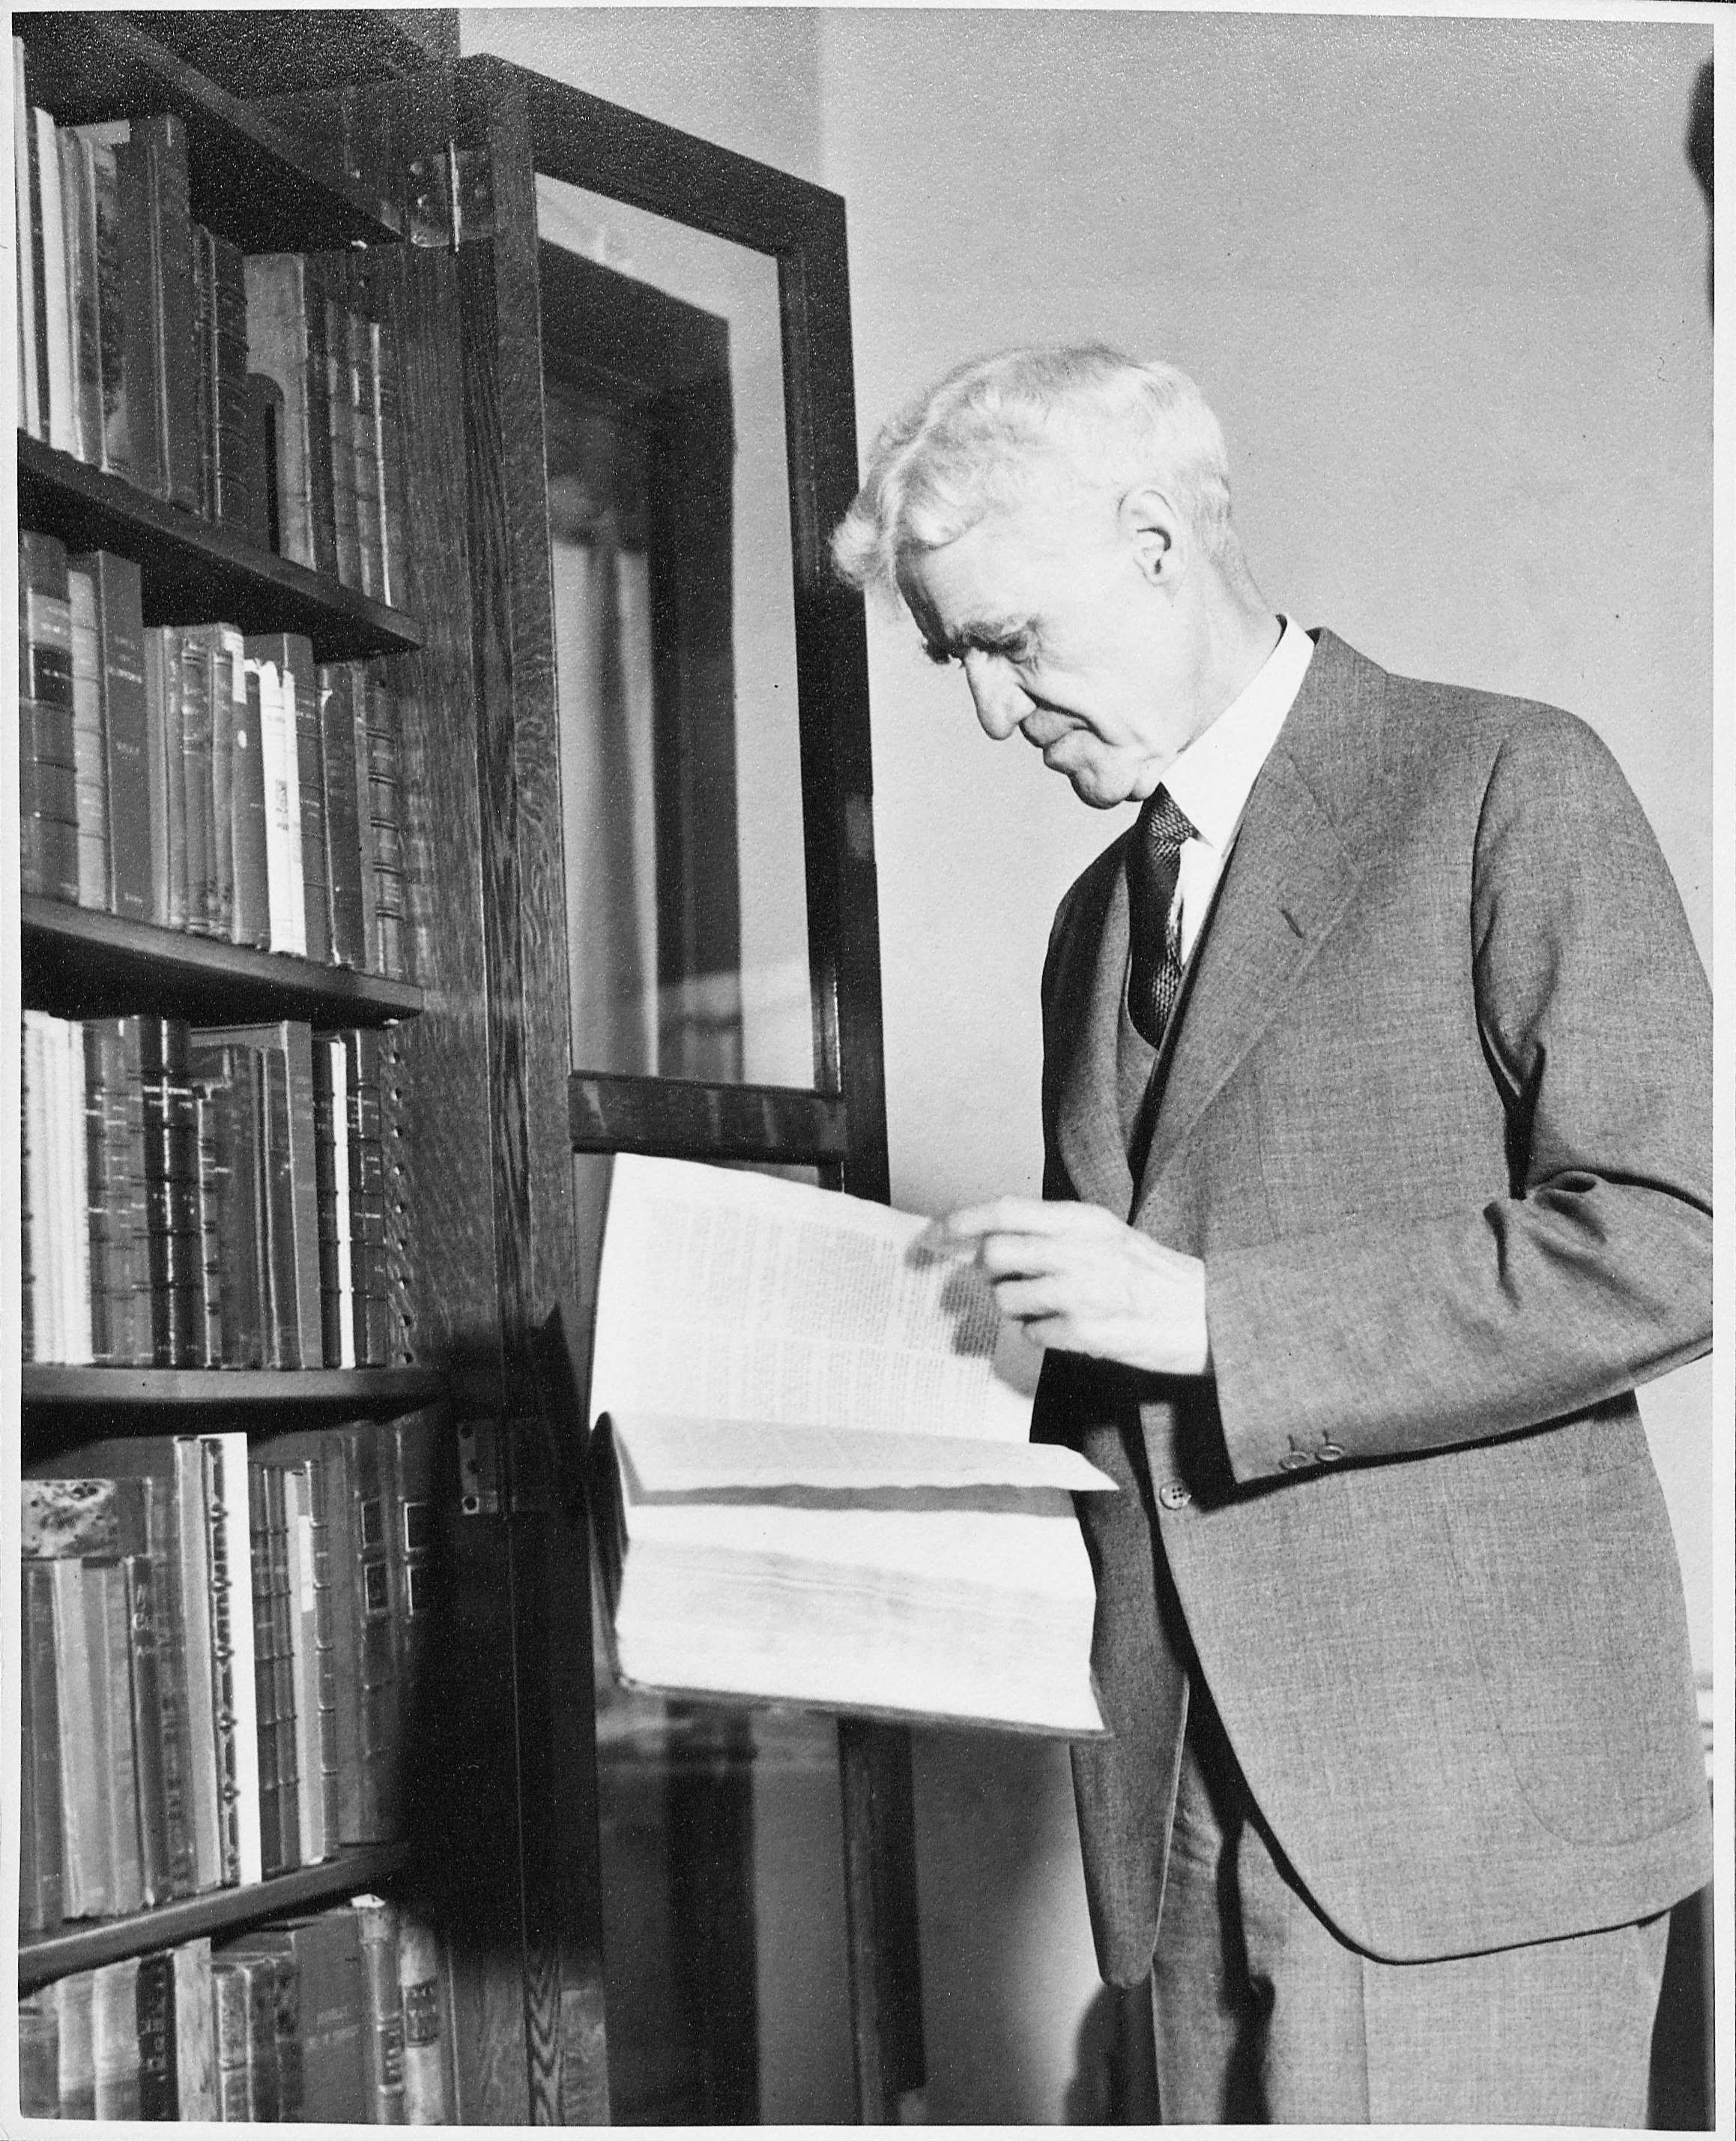 Tracy W. McGregor inspecting a book from his library.